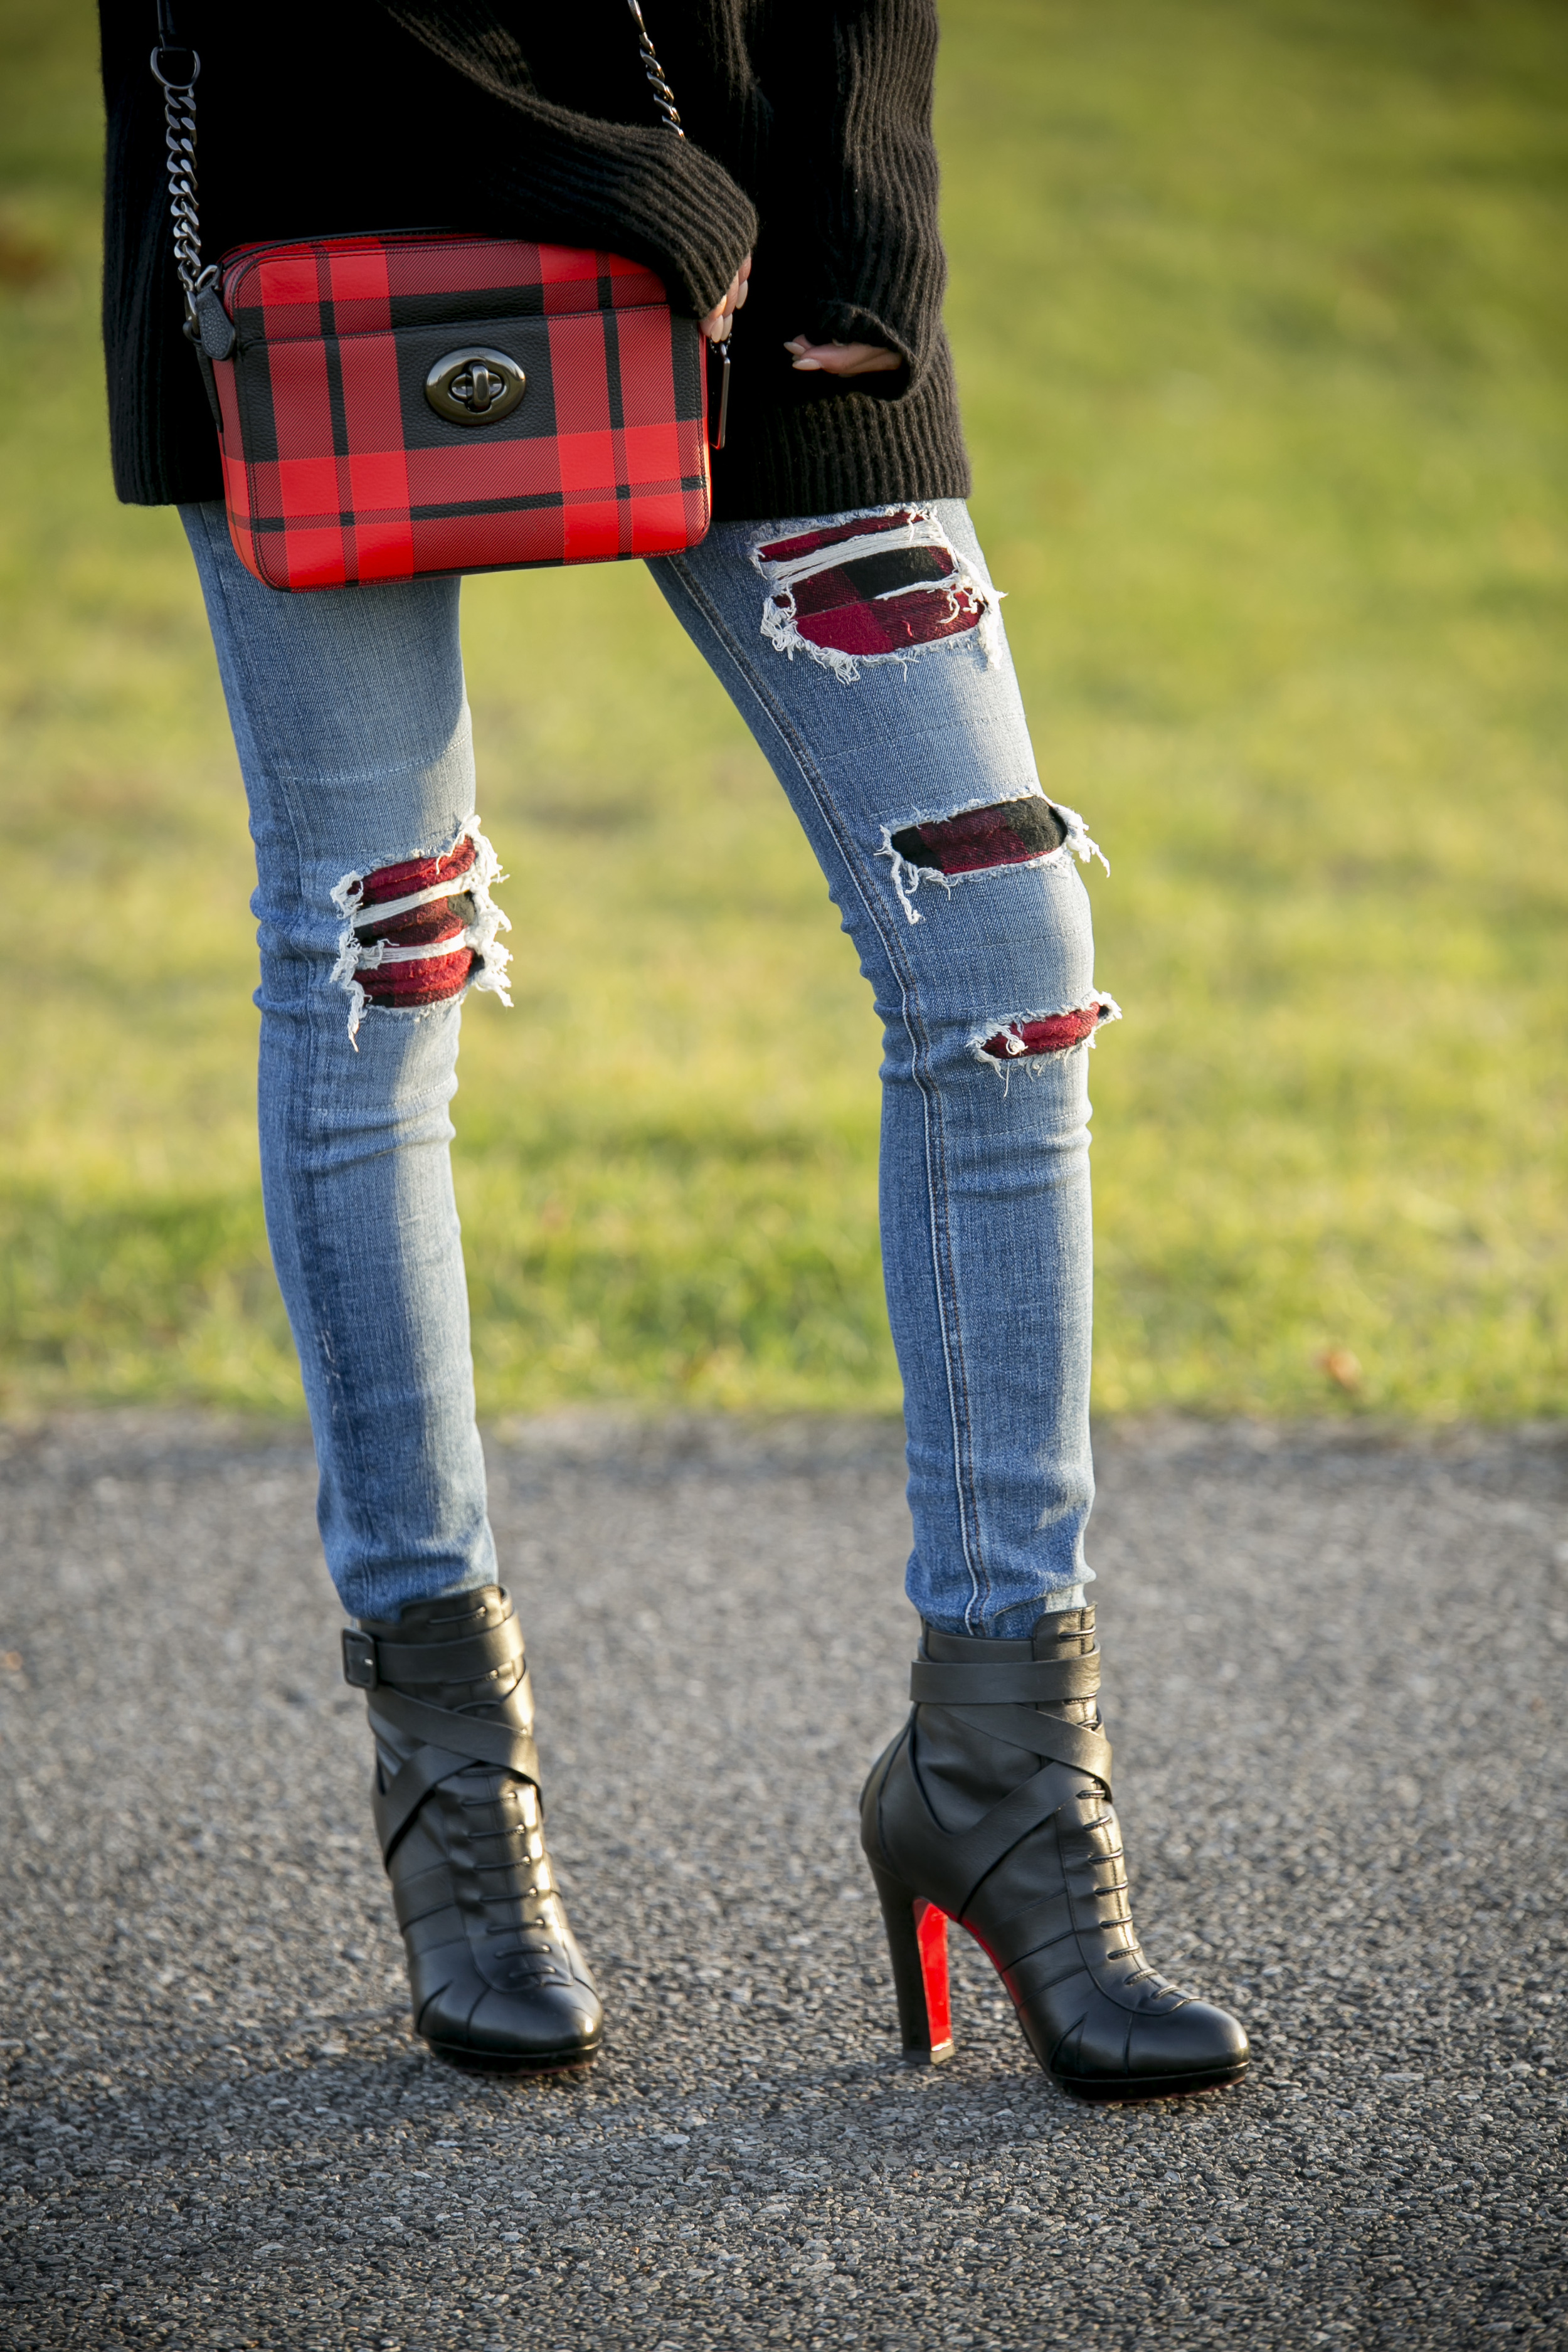 Plaid Coach Bag, Rag & Bone distressed jeans, and Christian Louboutin boots